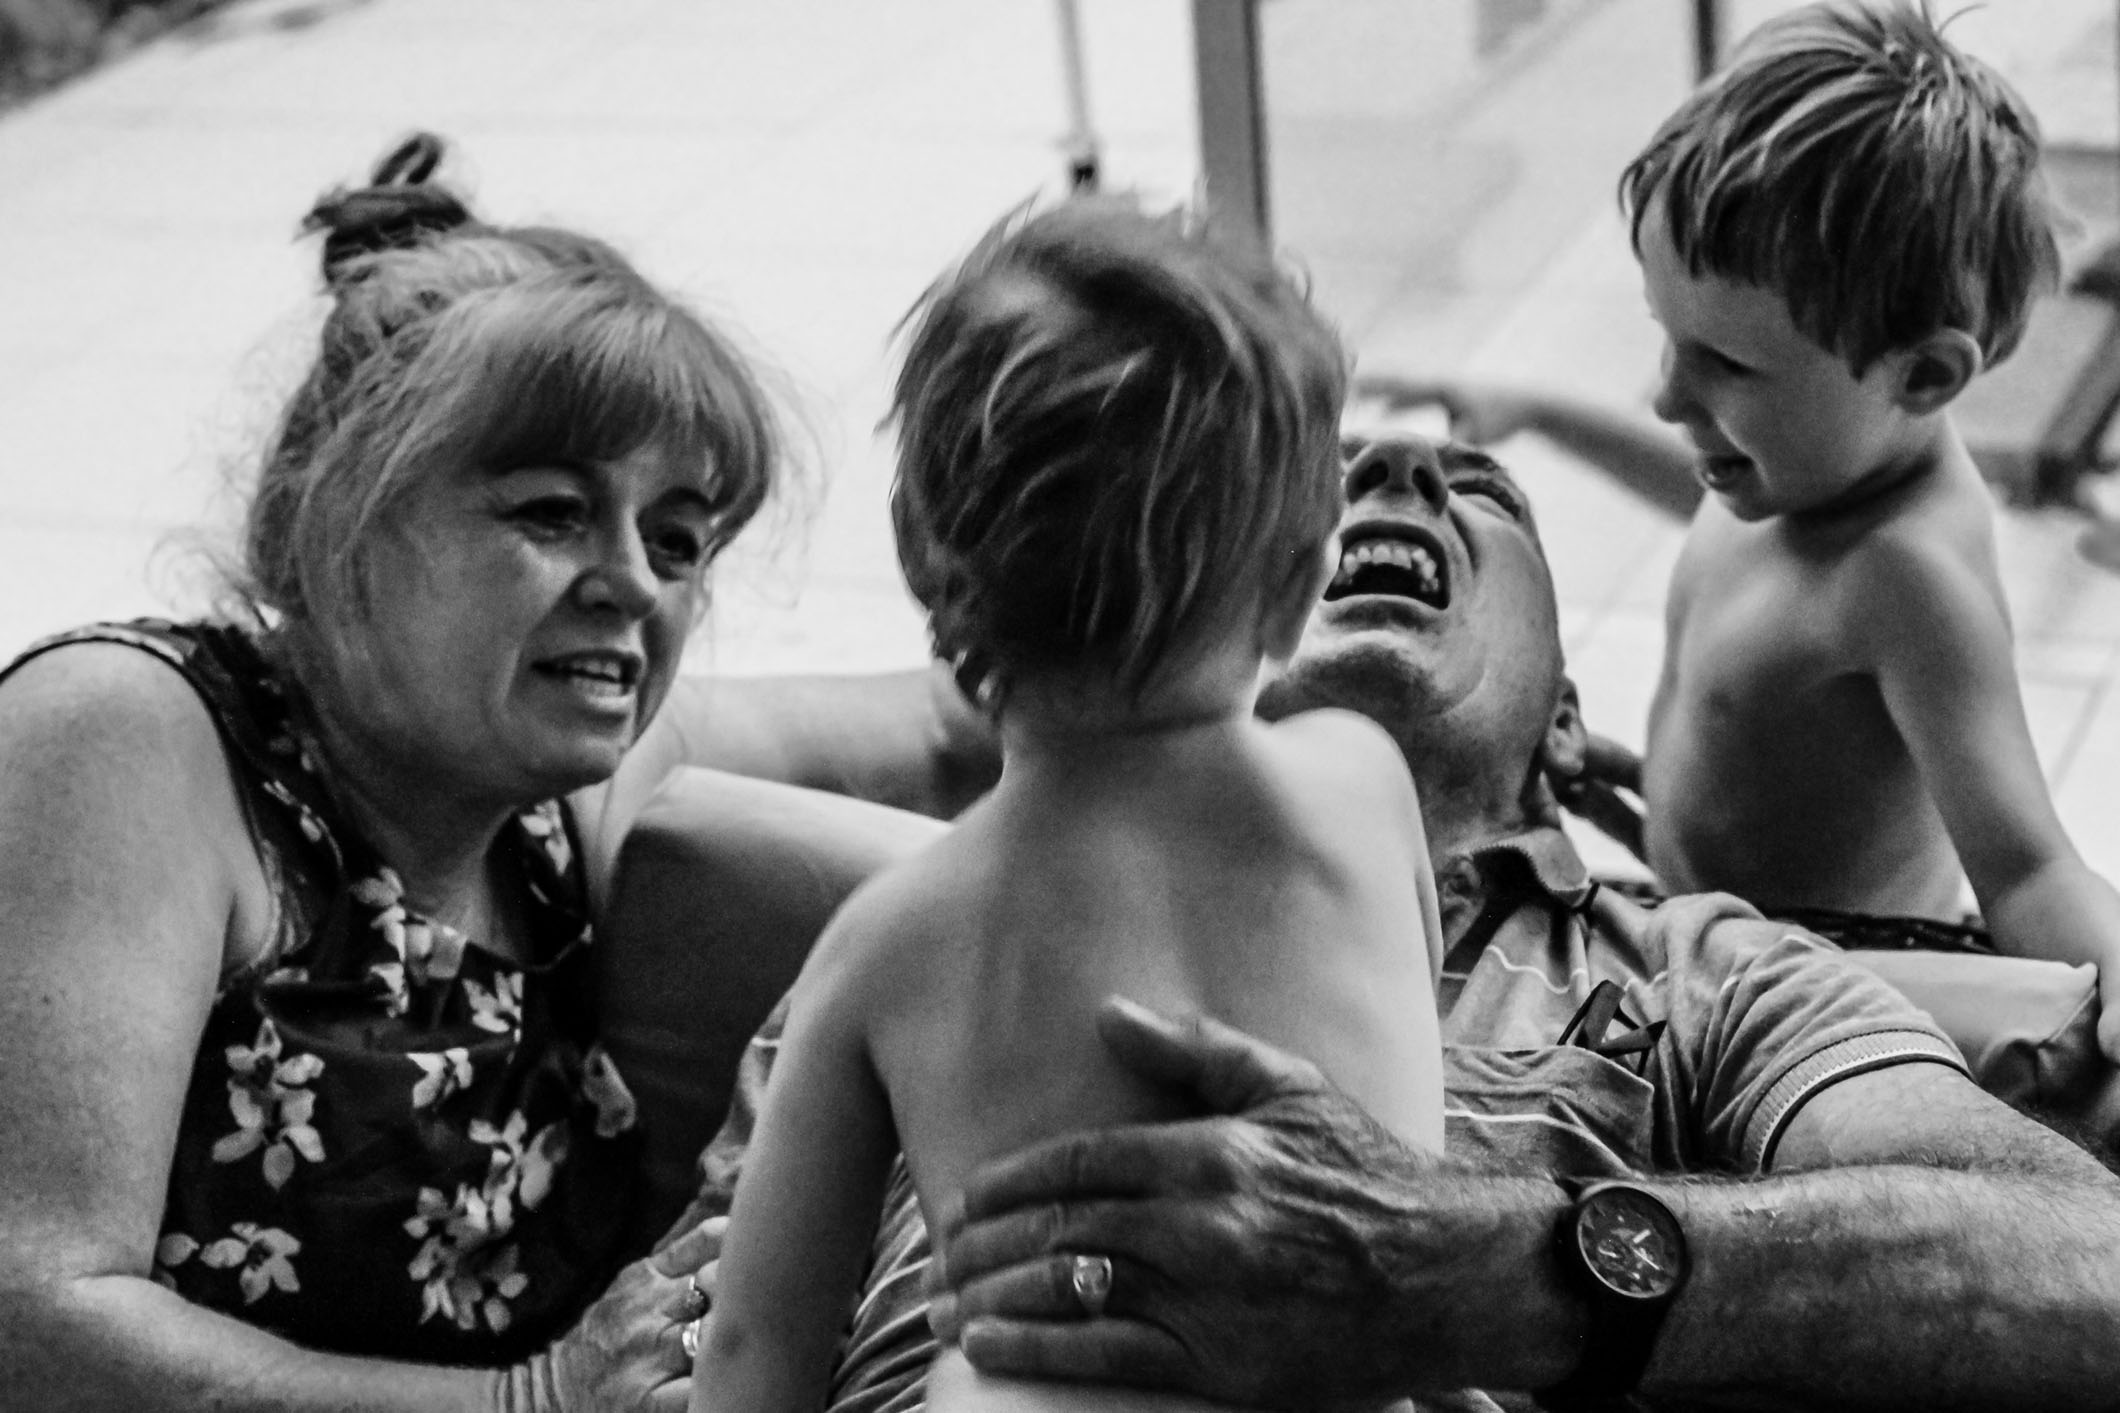 Grandparents-wrestling-with-grandchildren-family-documentary-photography-gold-coast